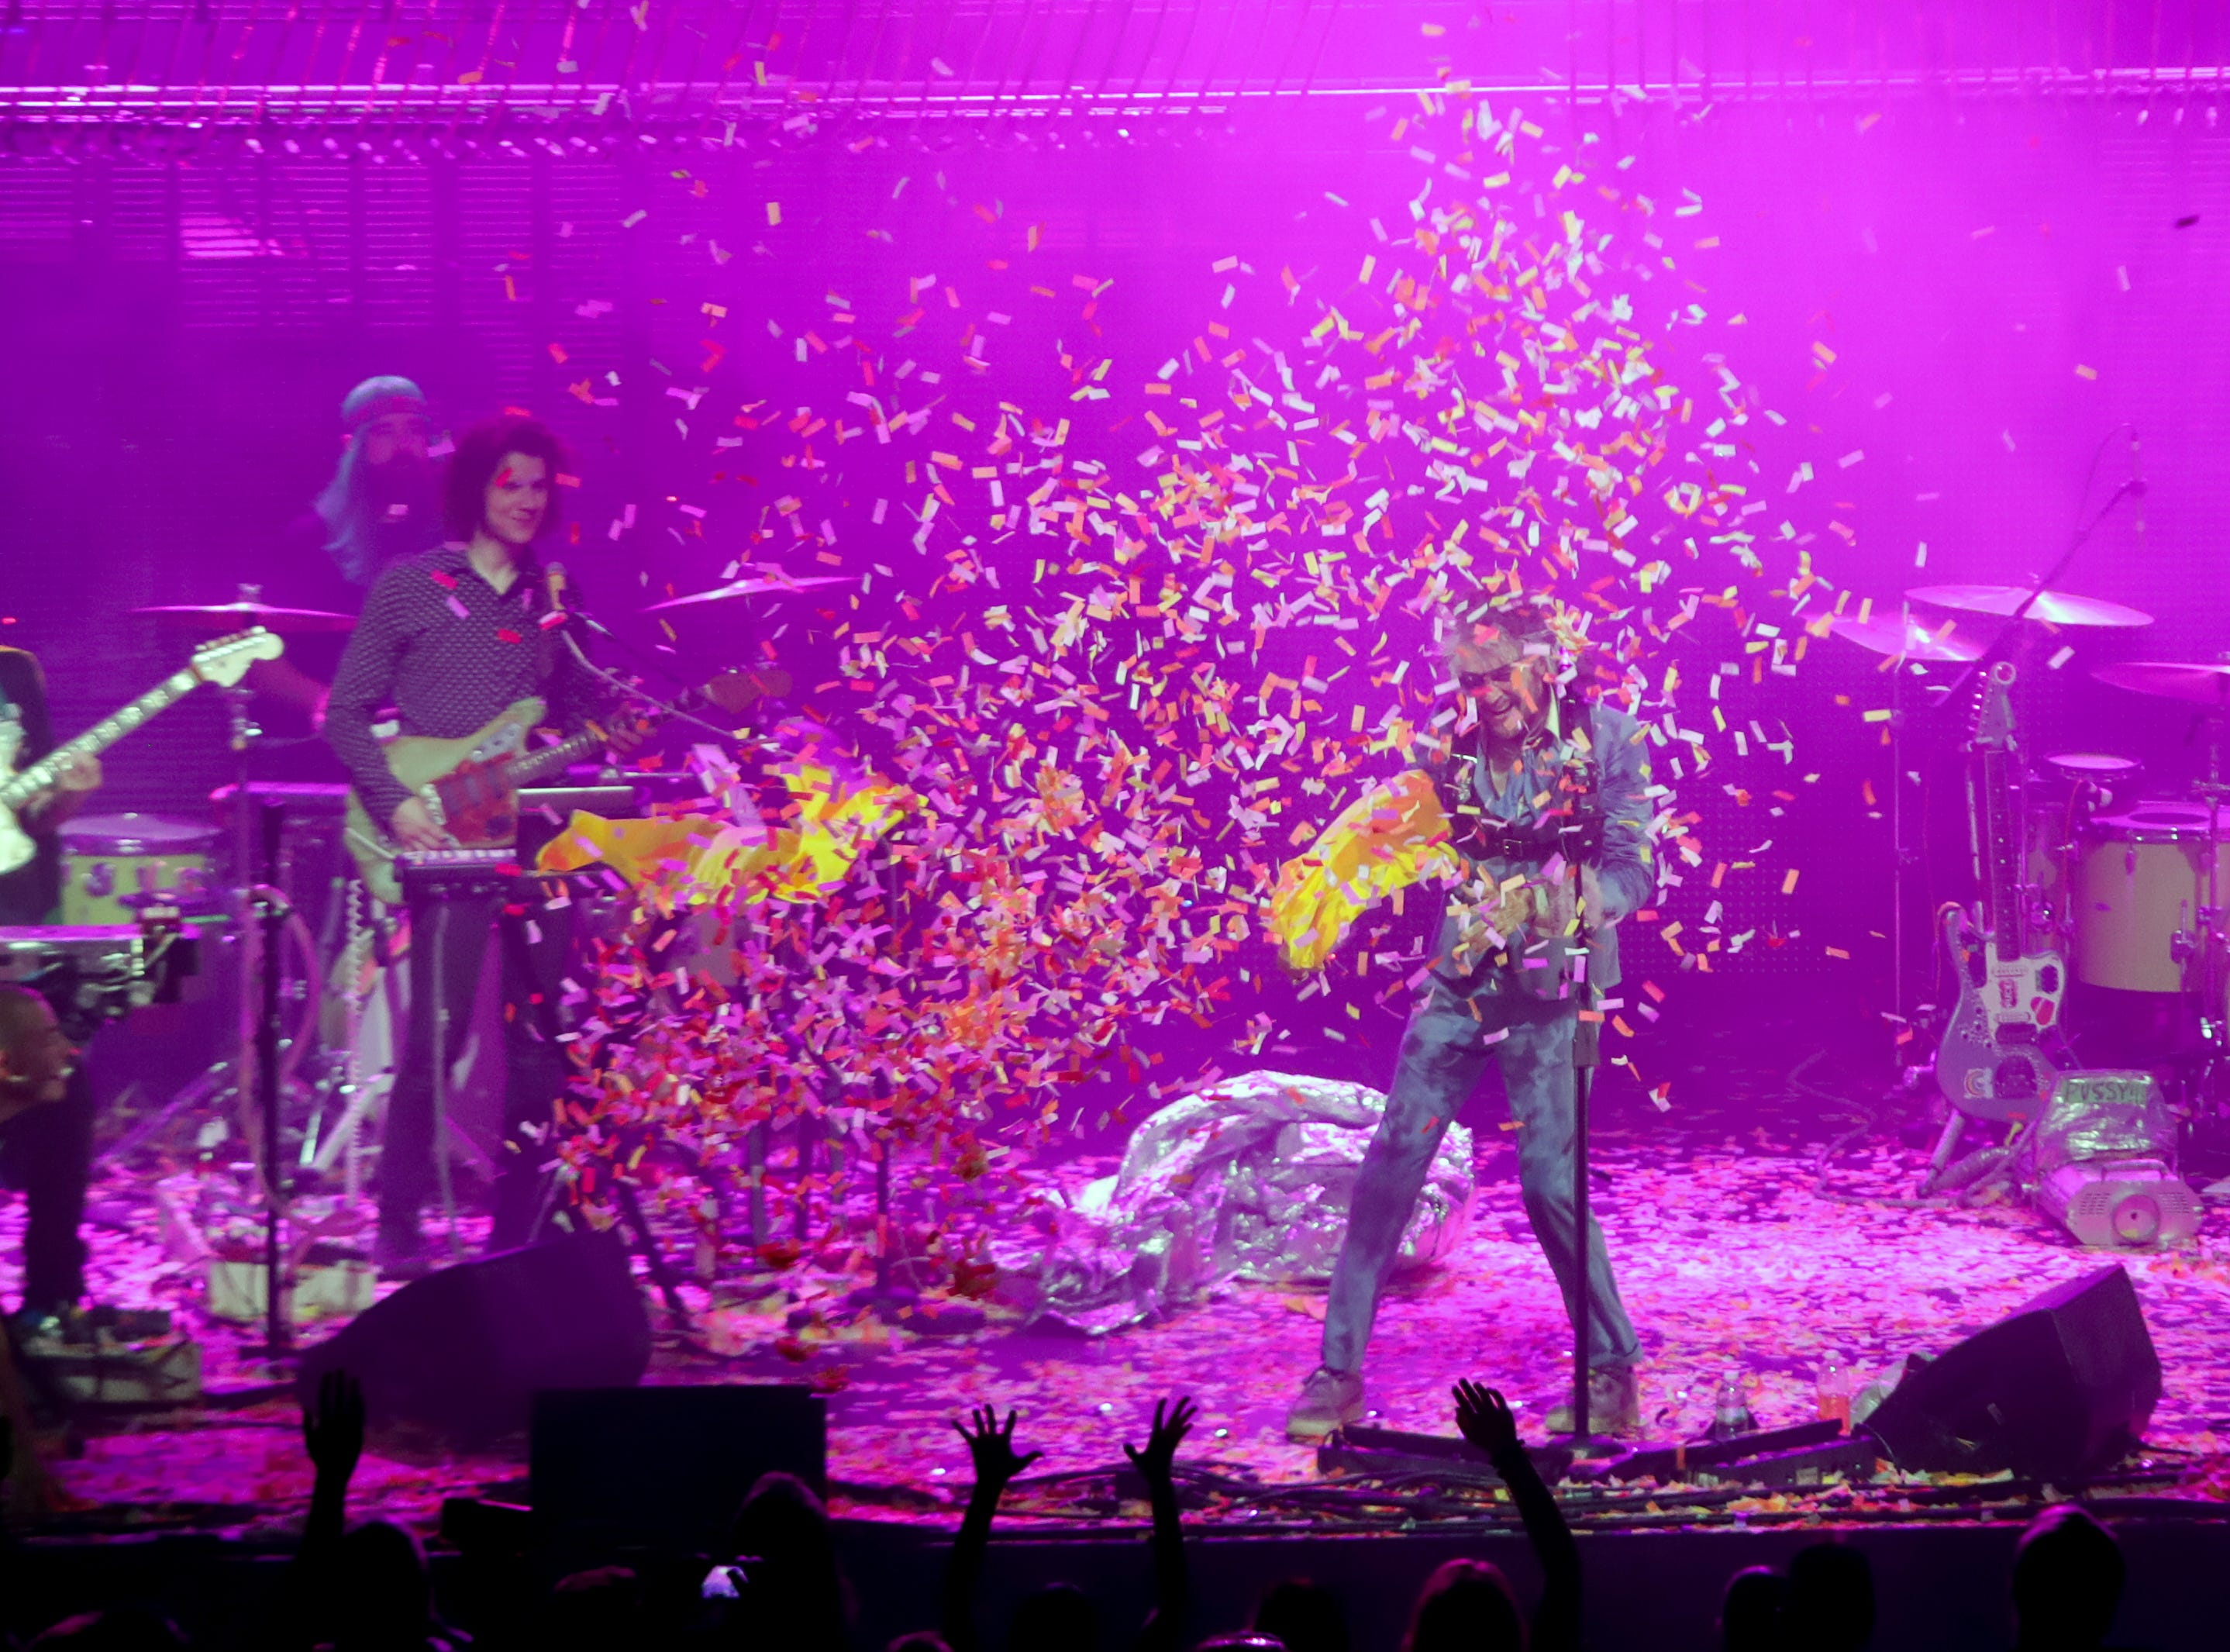 Wayne Coyne of The Flaming Lips entertained the crowd at Iroquois Amphitheater in Louisville, Ky. Aug. 27, 2018